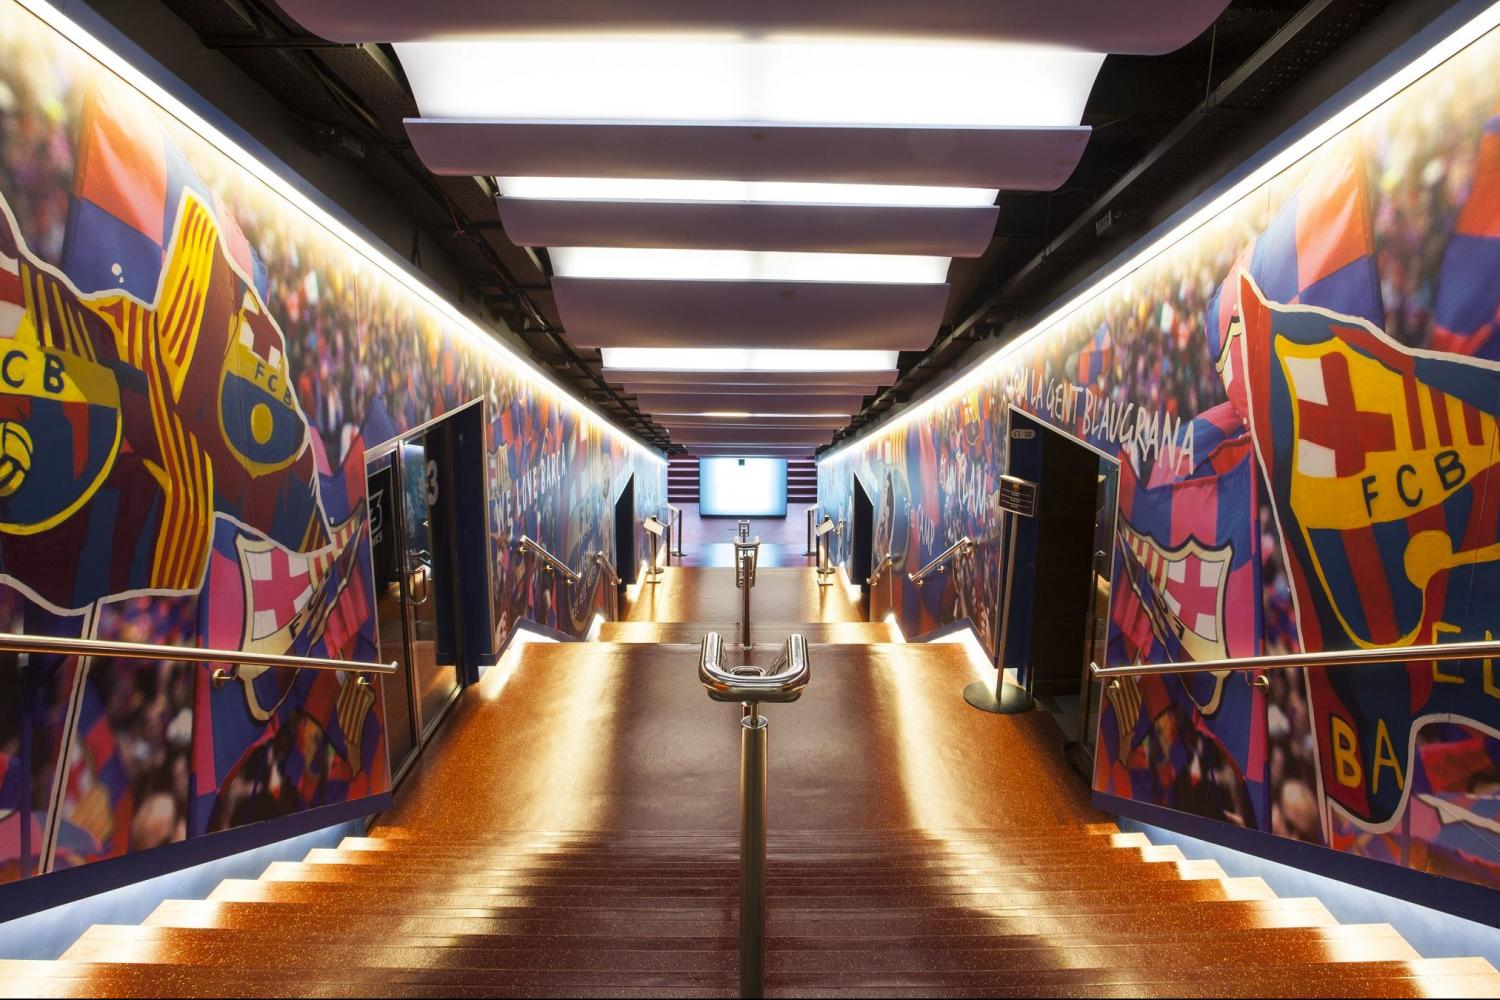 F C Barcelona Fans Camp Nou Experience Guided Visit